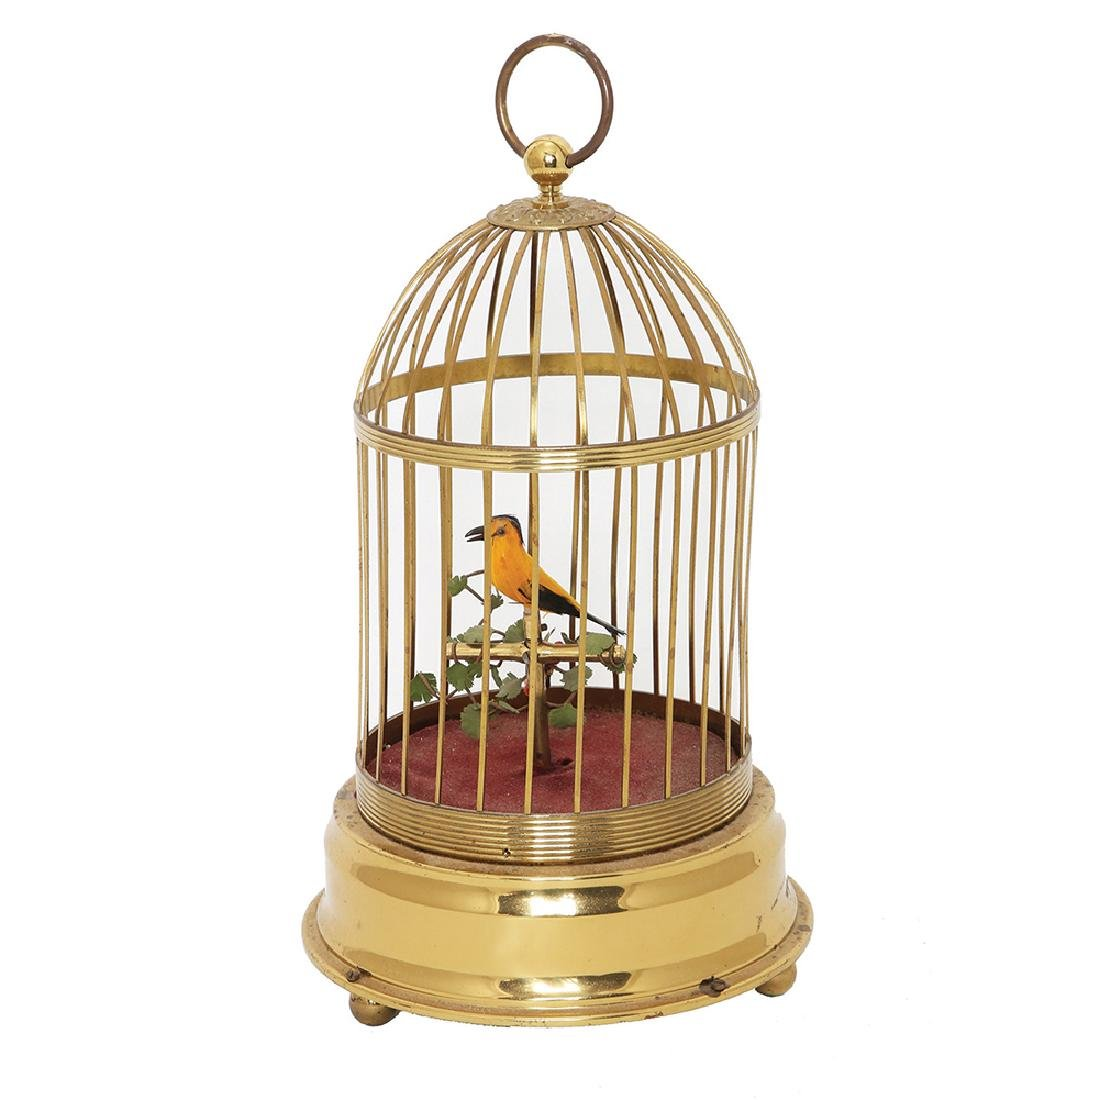 A BIRD IN A METAL CAGE